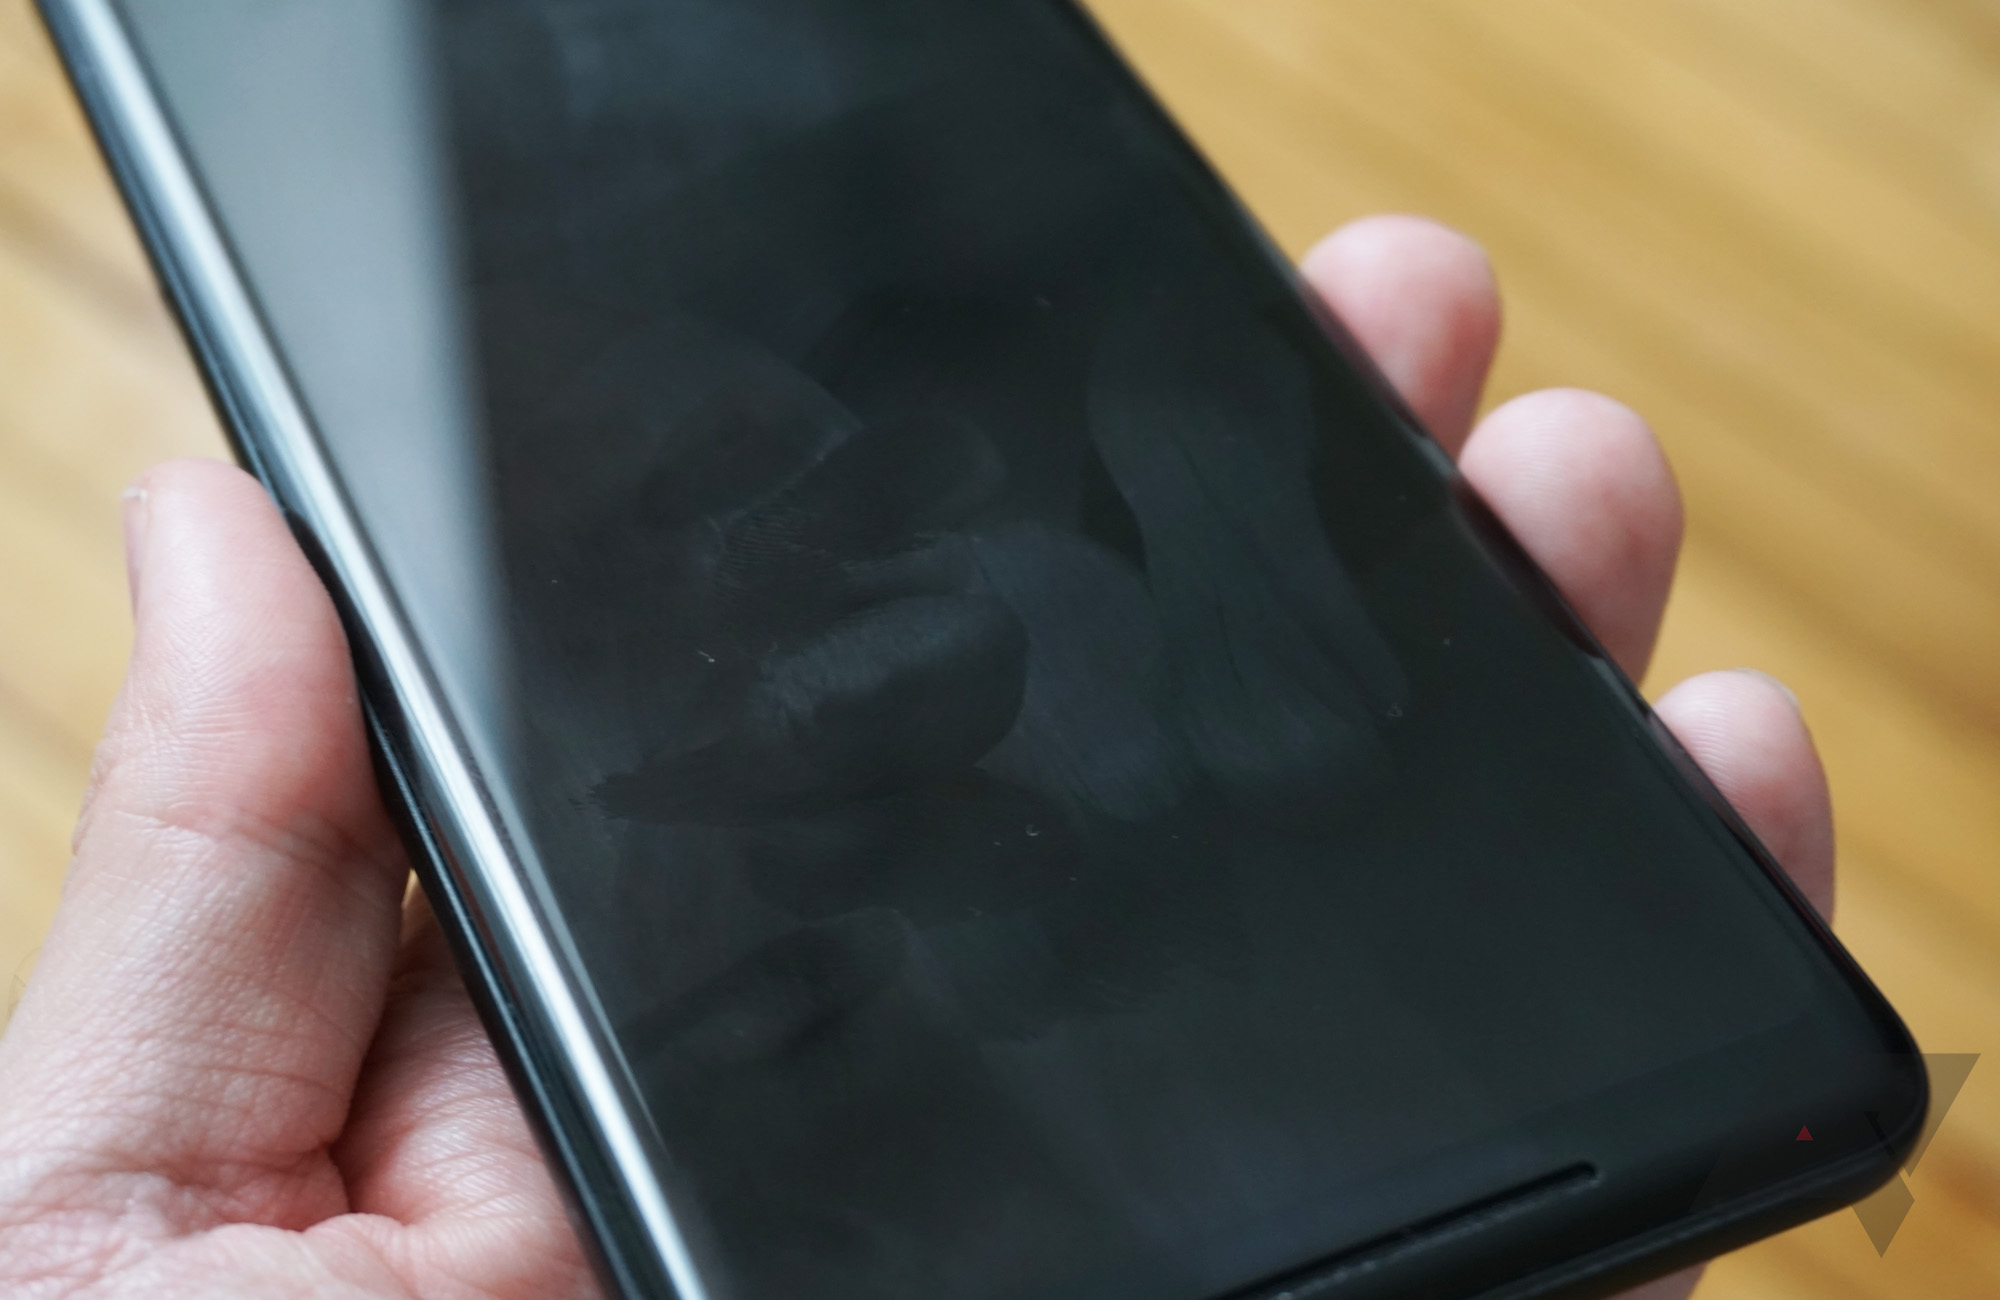 The Pixel 2 XL's oleophobic coating is so bad I almost don't